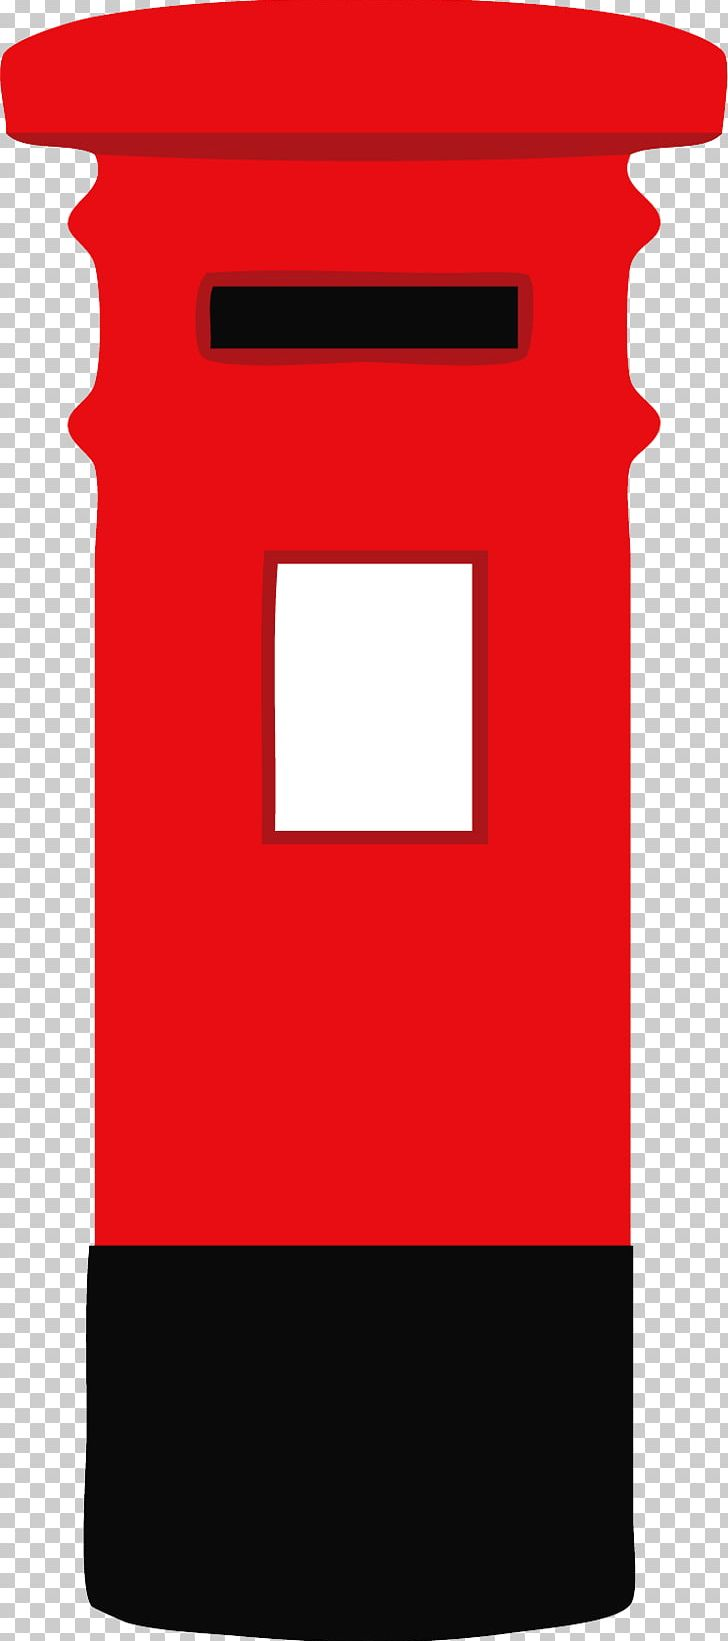 Post office box clipart banner library stock Mail Post Box Post-office Box Post Office PNG, Clipart, Box ... banner library stock